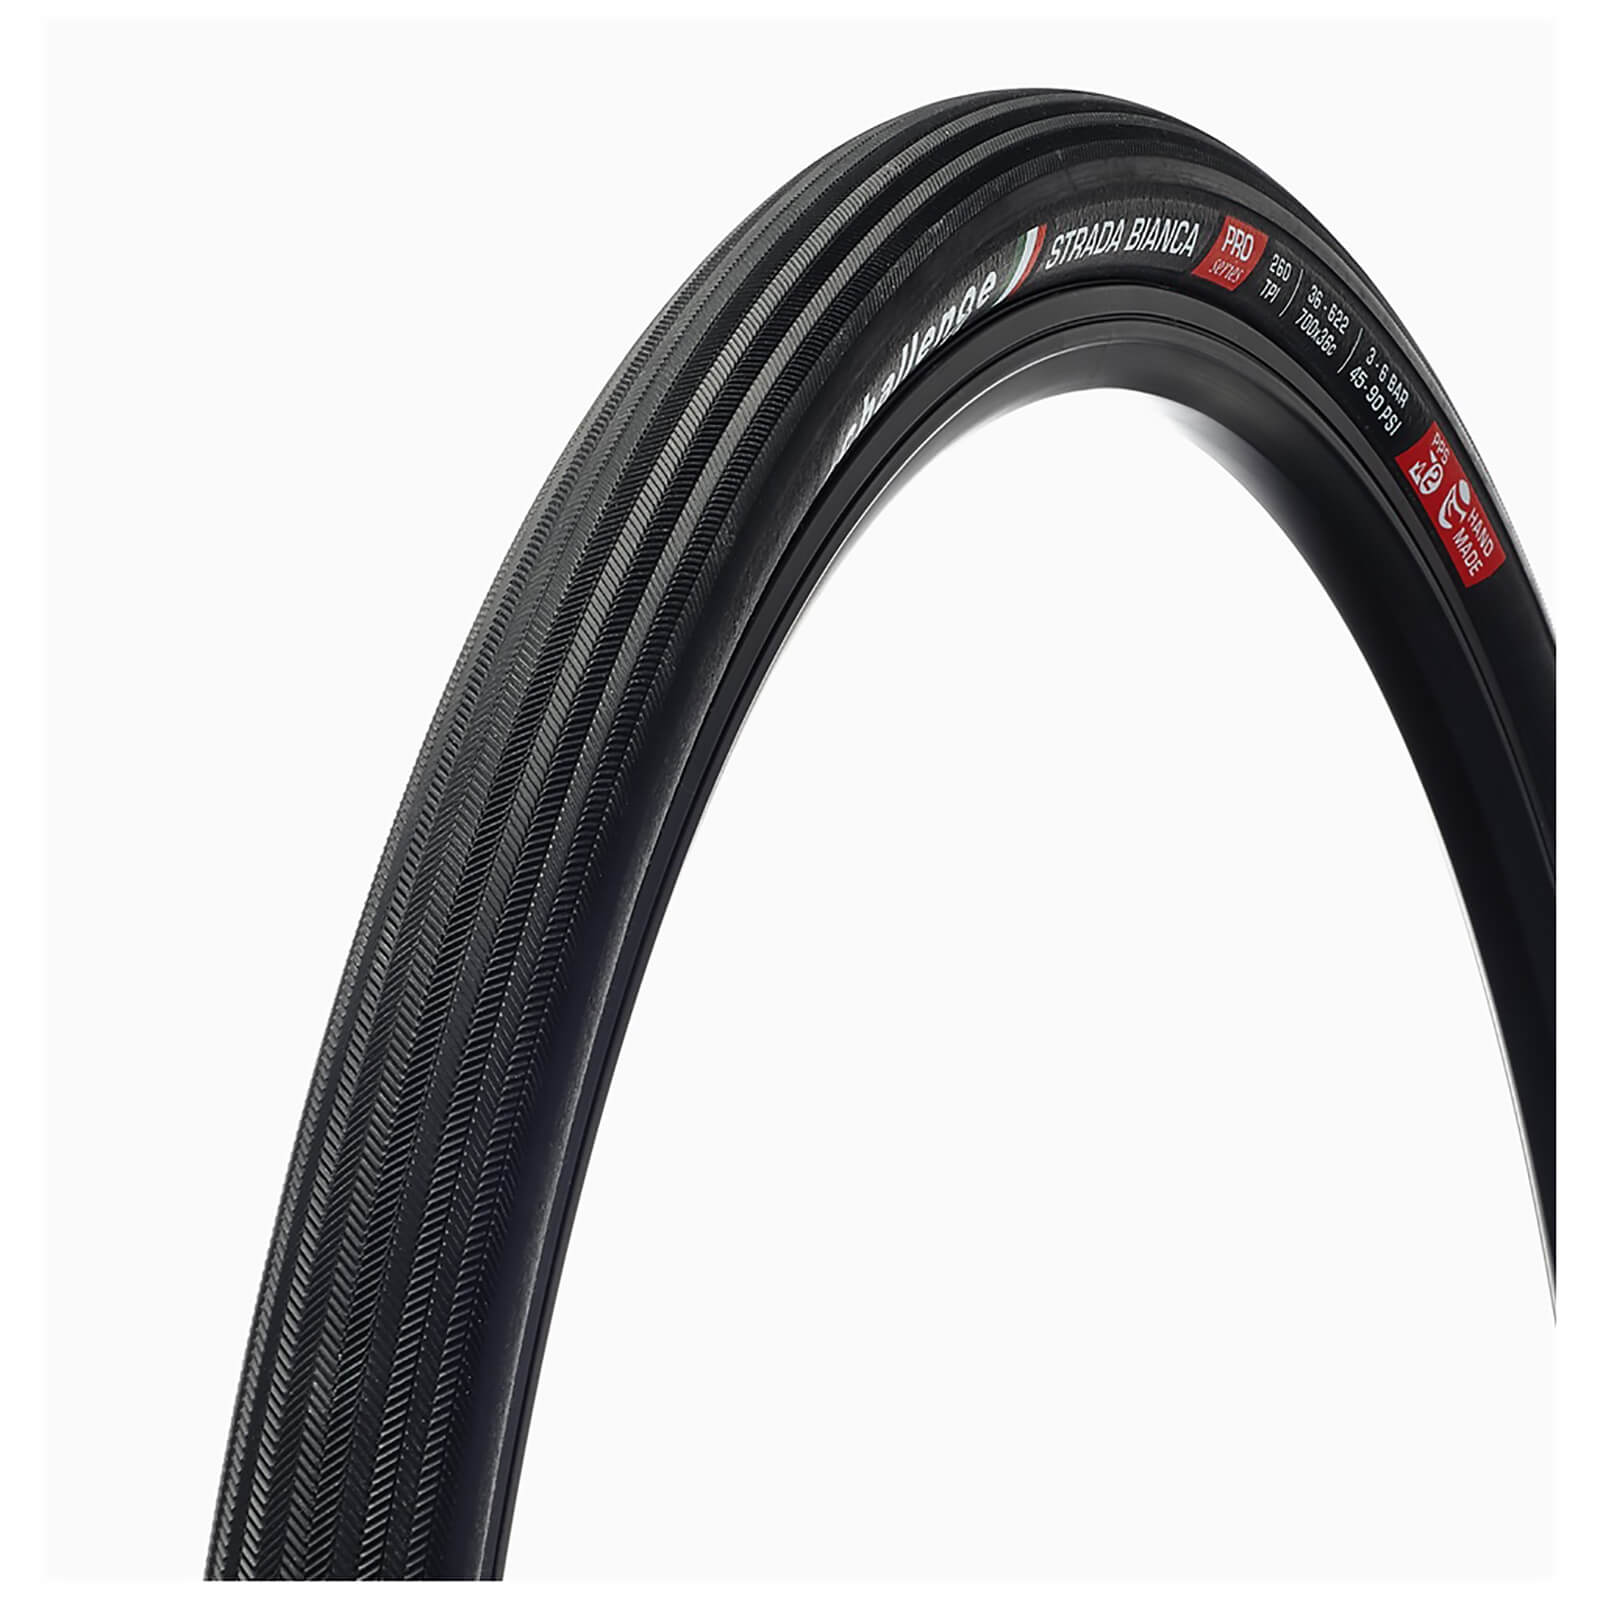 Challenge Strada Bianca 120 TPI Clincher Road Tyre - 700c x 36mm